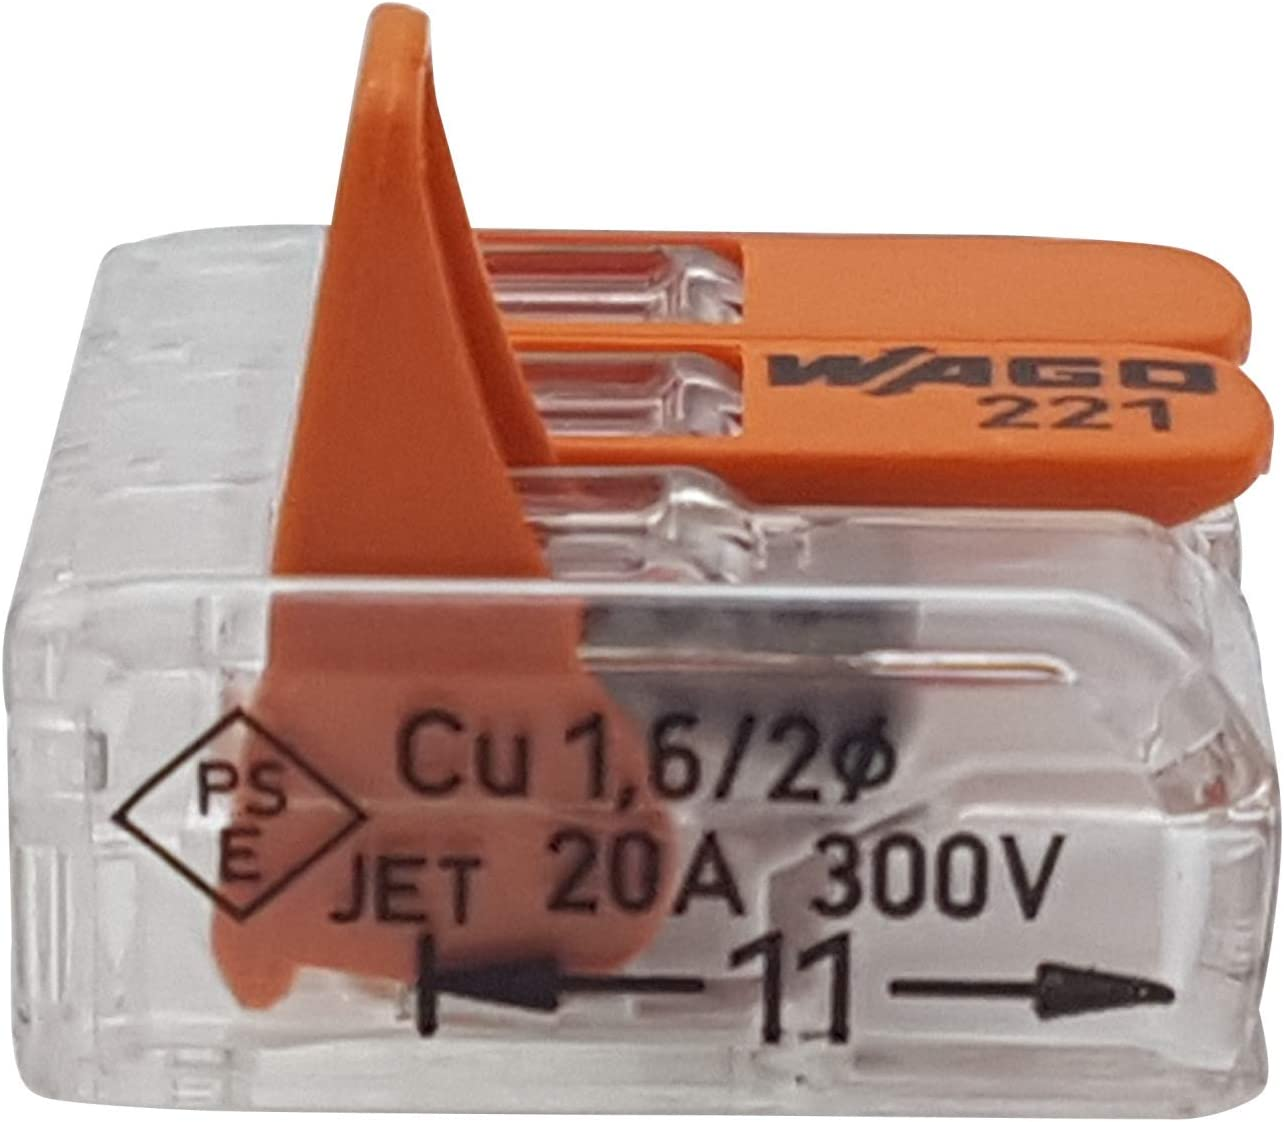 Wago 221 Connection Clamp with Lever Small Design Transparent